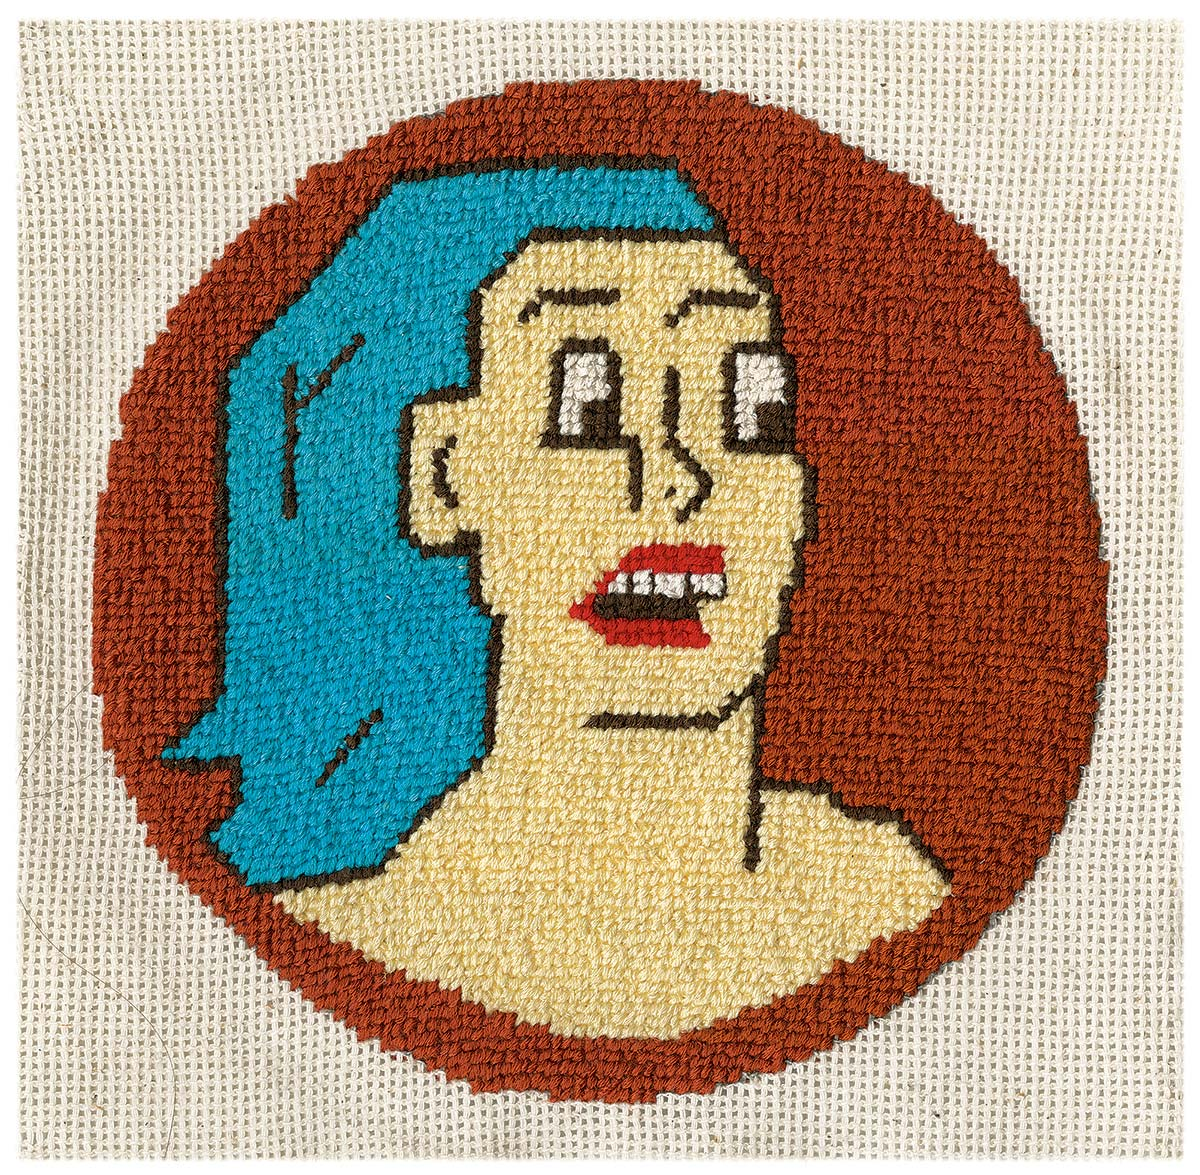 Walk for Walk cross stich embroidery of a woman with blue hair